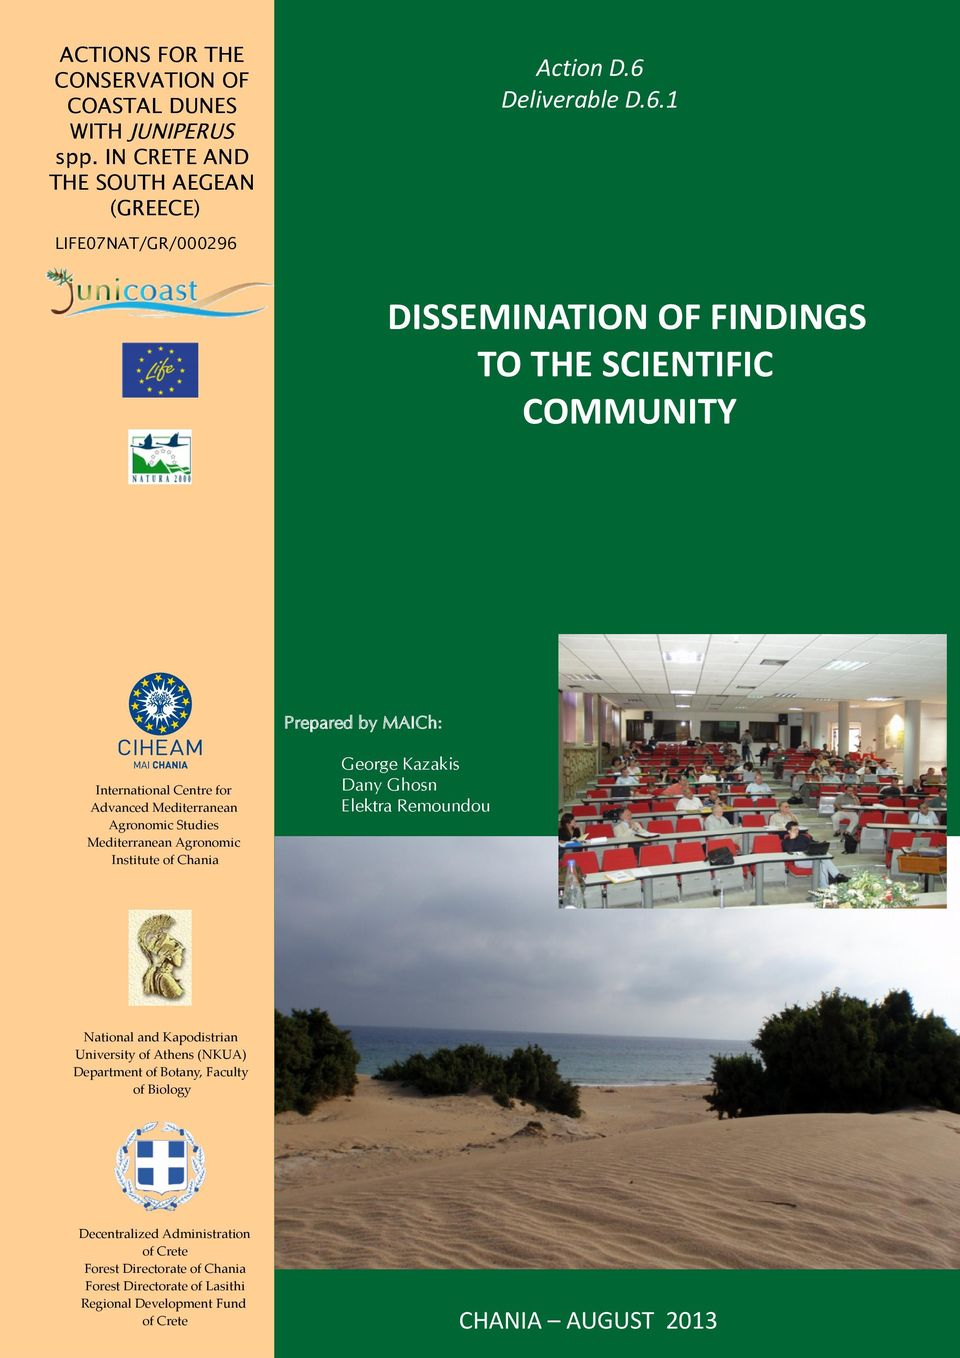 1 LIFE07NAT/GR/000296 DISSEMINATION OF FINDINGS TO THE SCIENTIFIC COMMUNITY Prepared by MAICh: International Centre for Advanced Mediterranean Agronomic